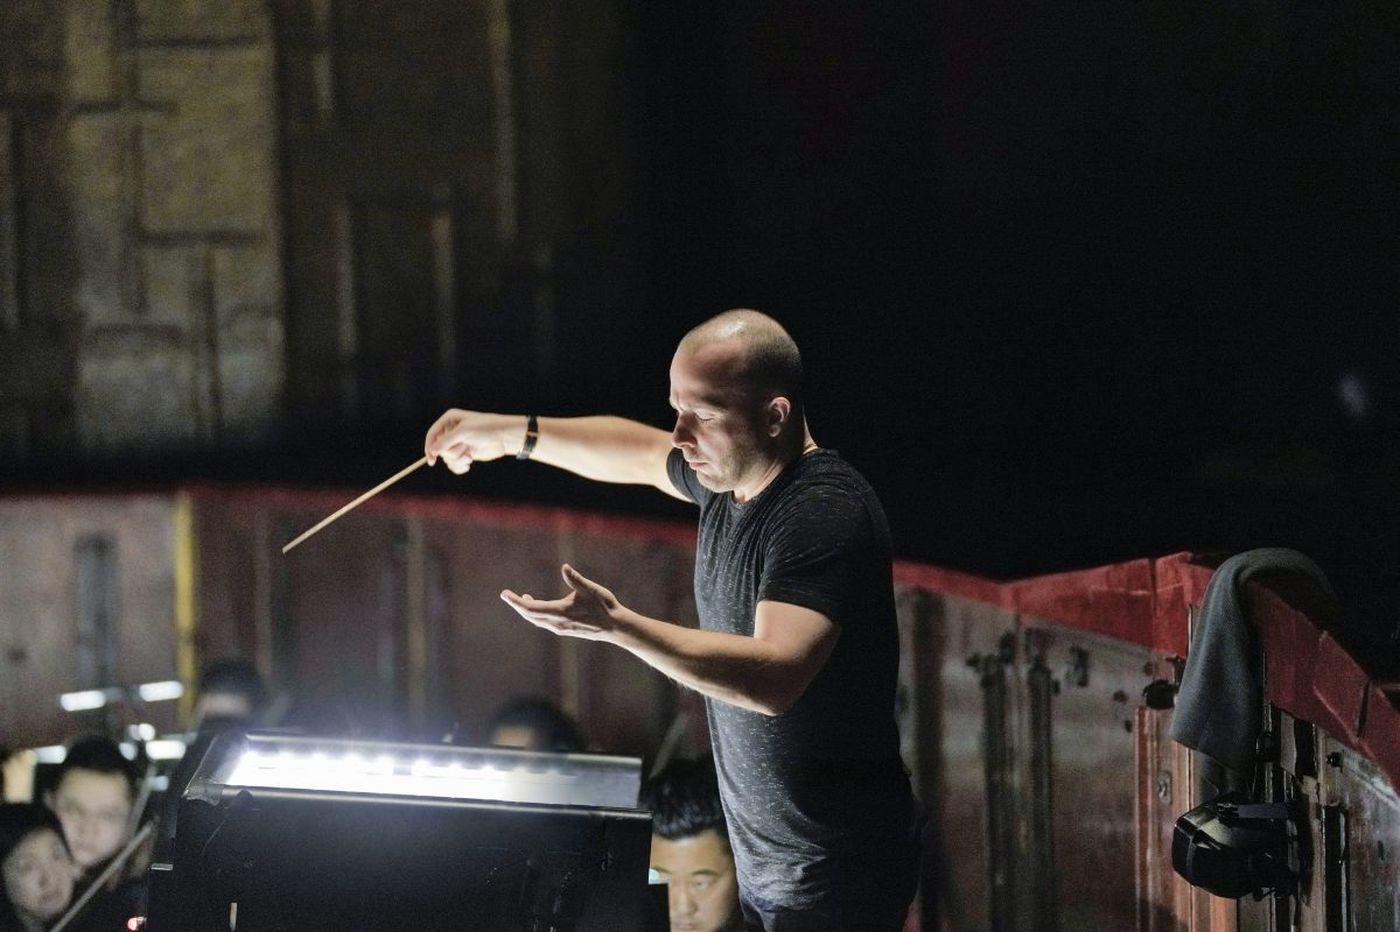 Yannick Nézet-Séguin to start at Met Opera two years earlier than originally planned